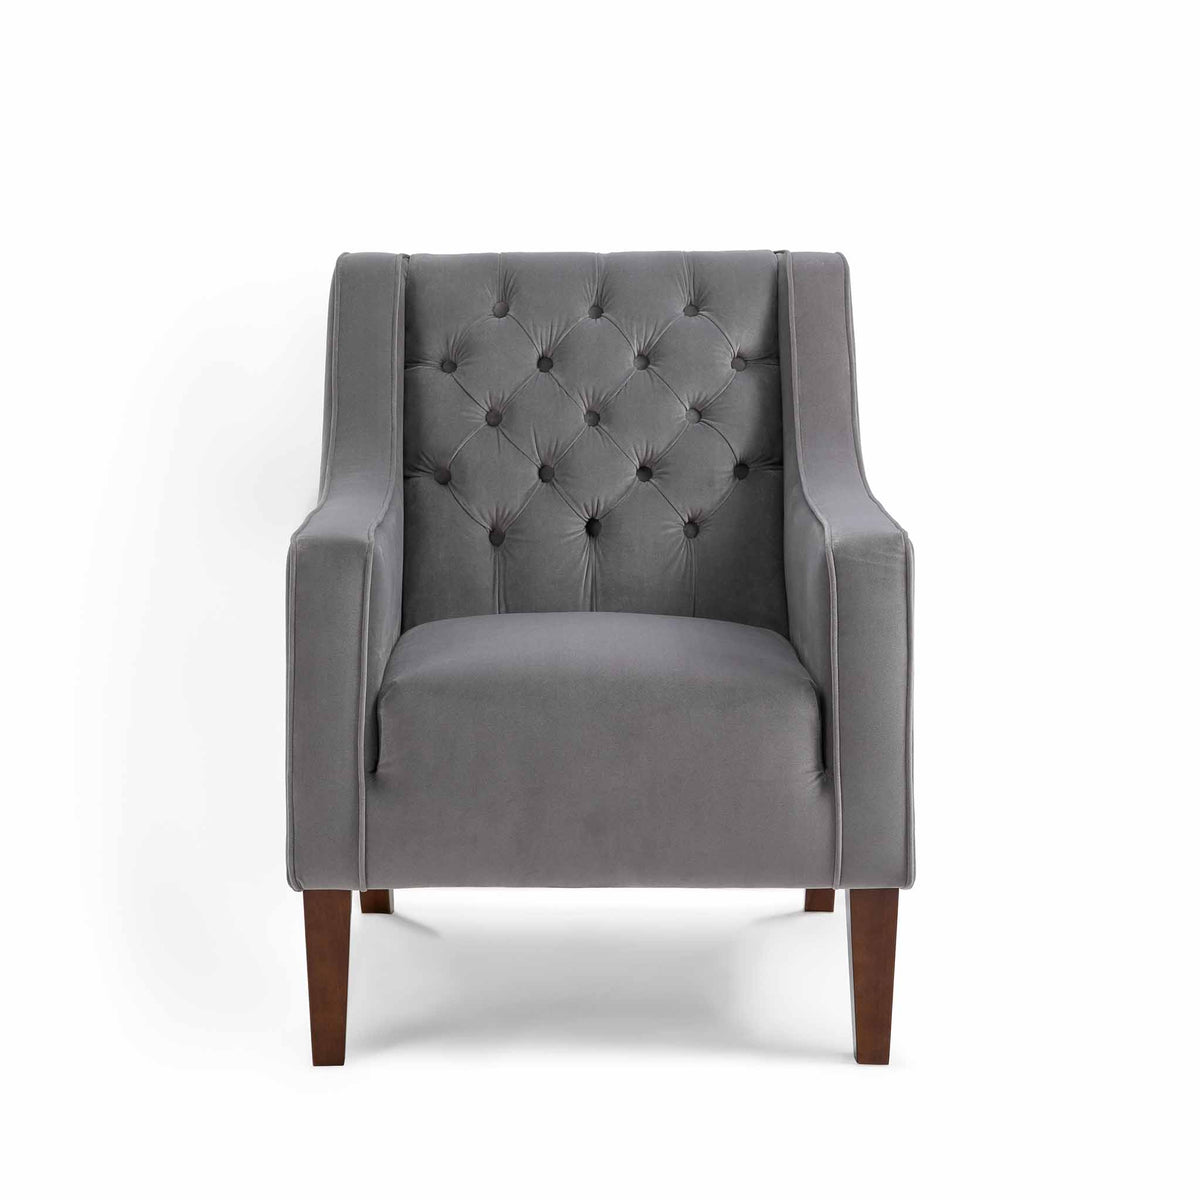 Eliza Grey Chesterfield Arm Chair by Roseland Furniture